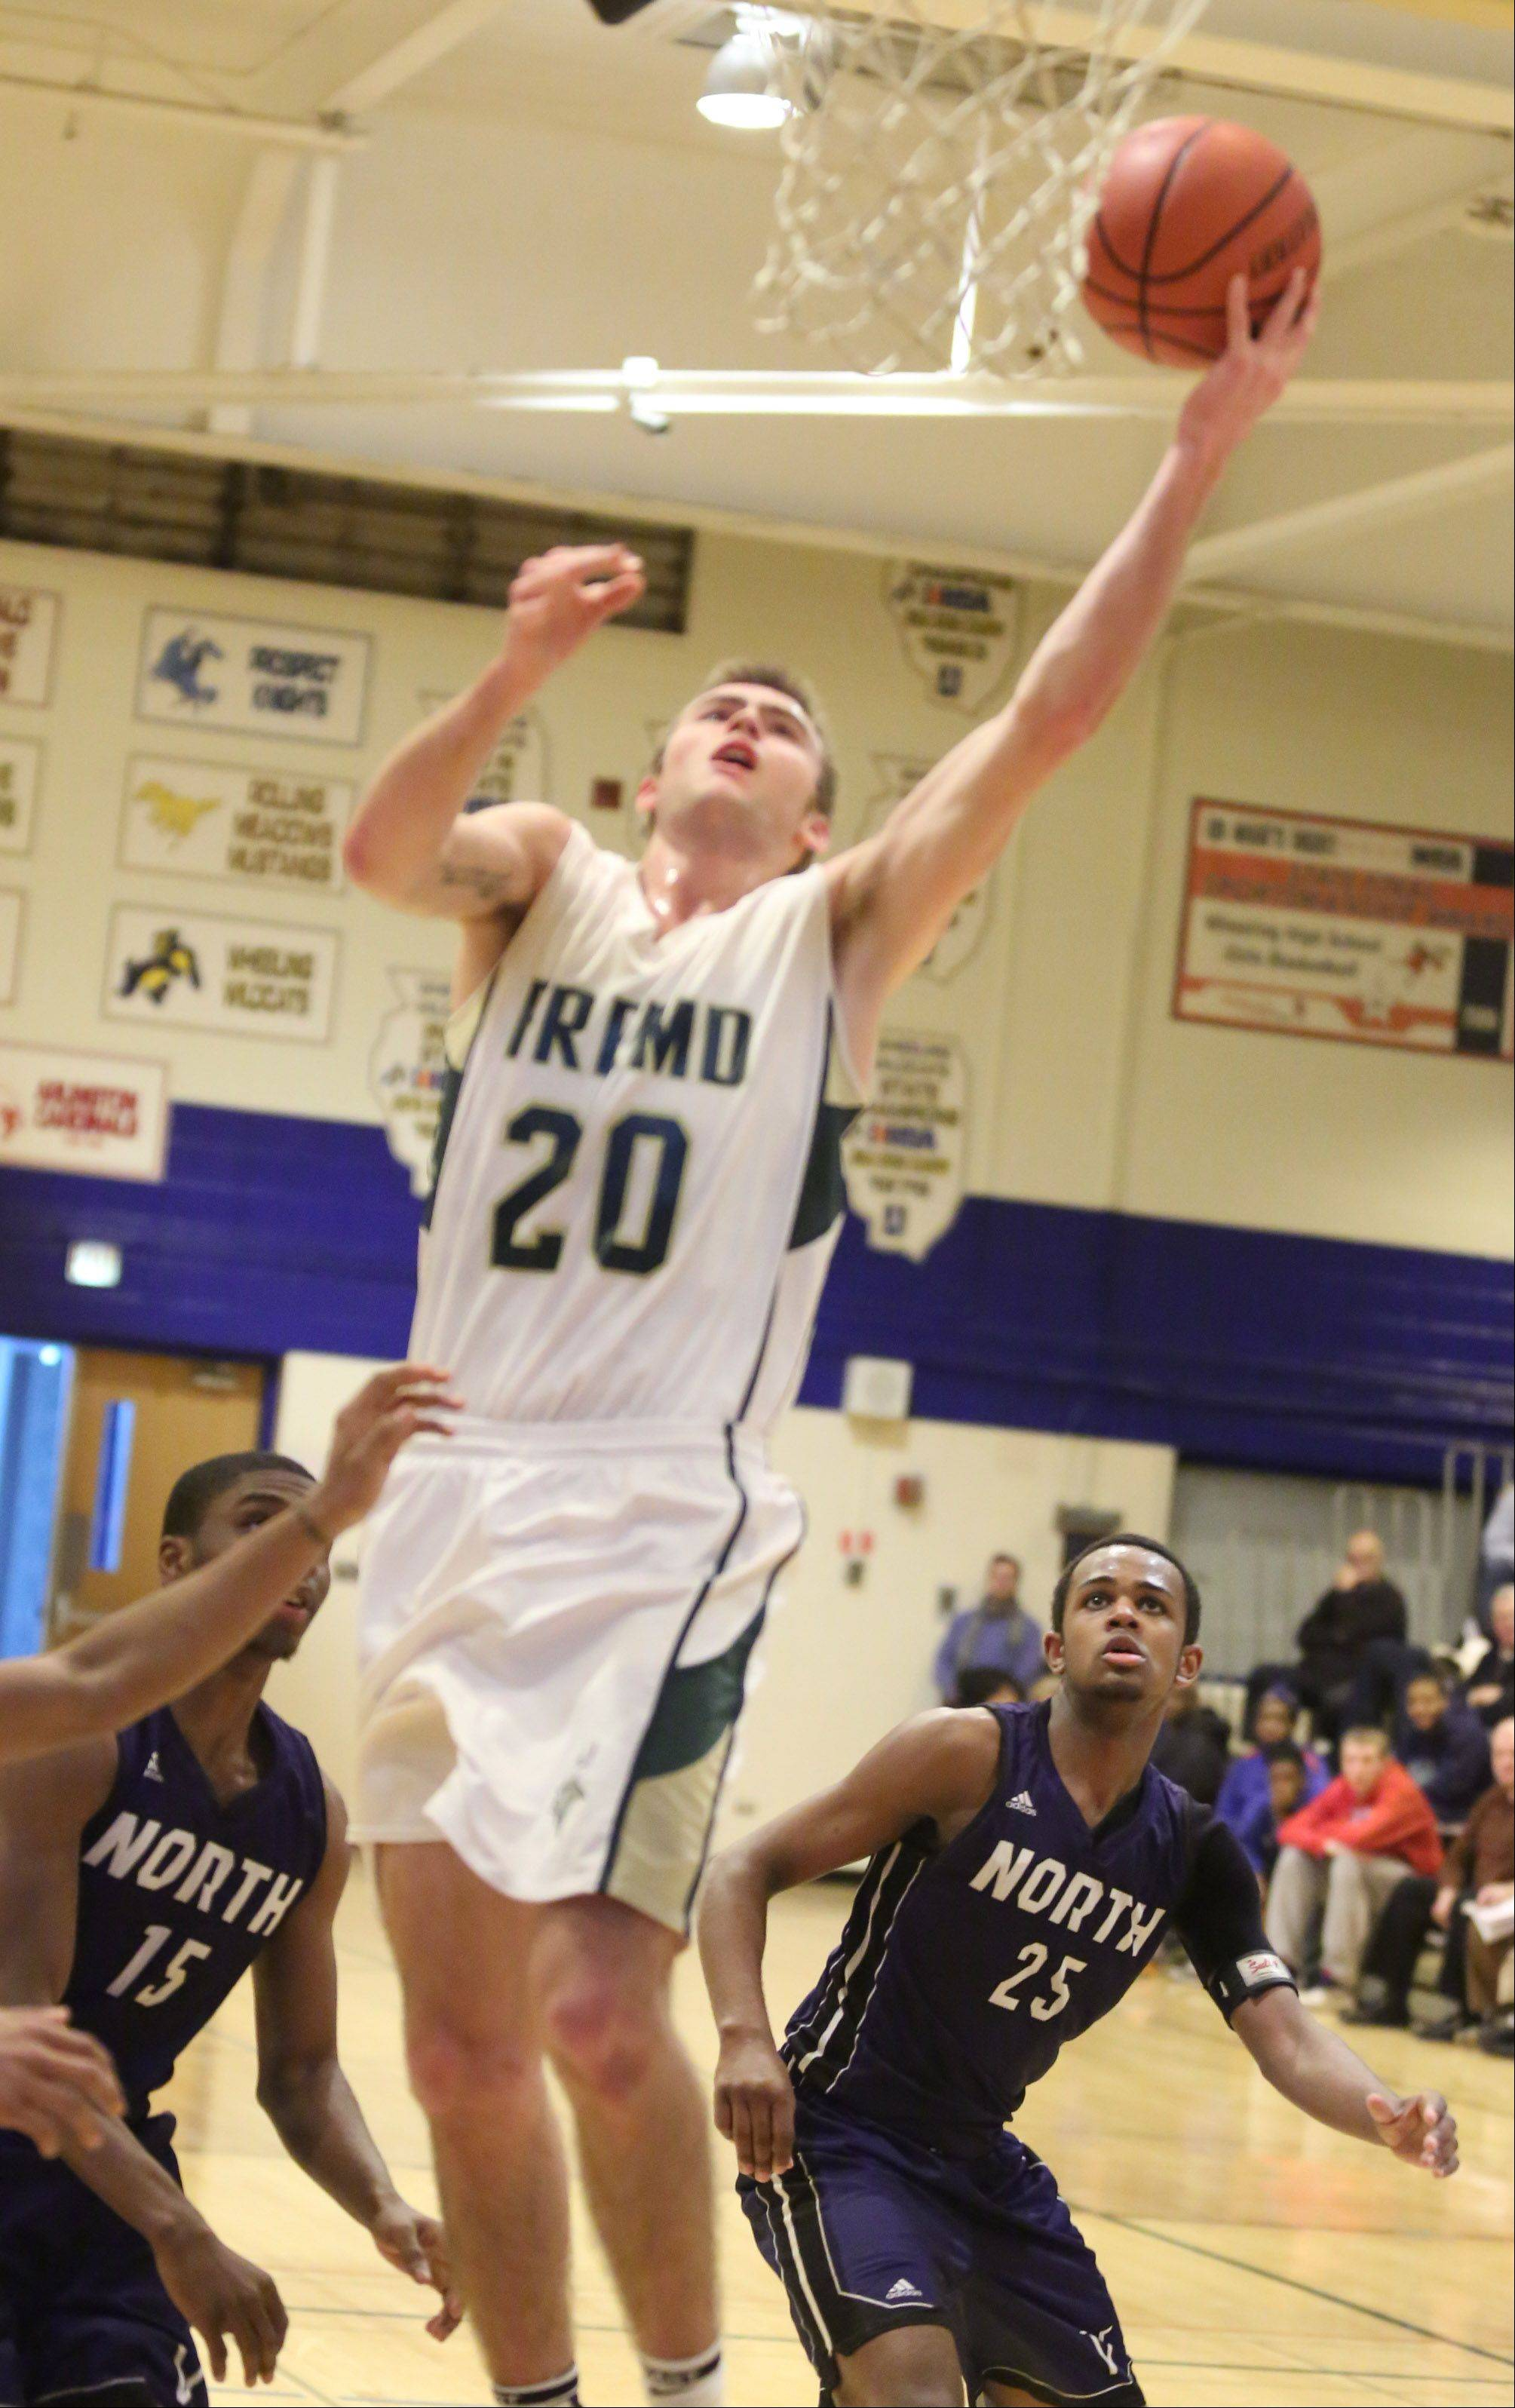 Images from the Fremd vs. Niles North boys basketball game at the Wheeling Hardwood Classic on Thursday, Dec. 26, 2013.